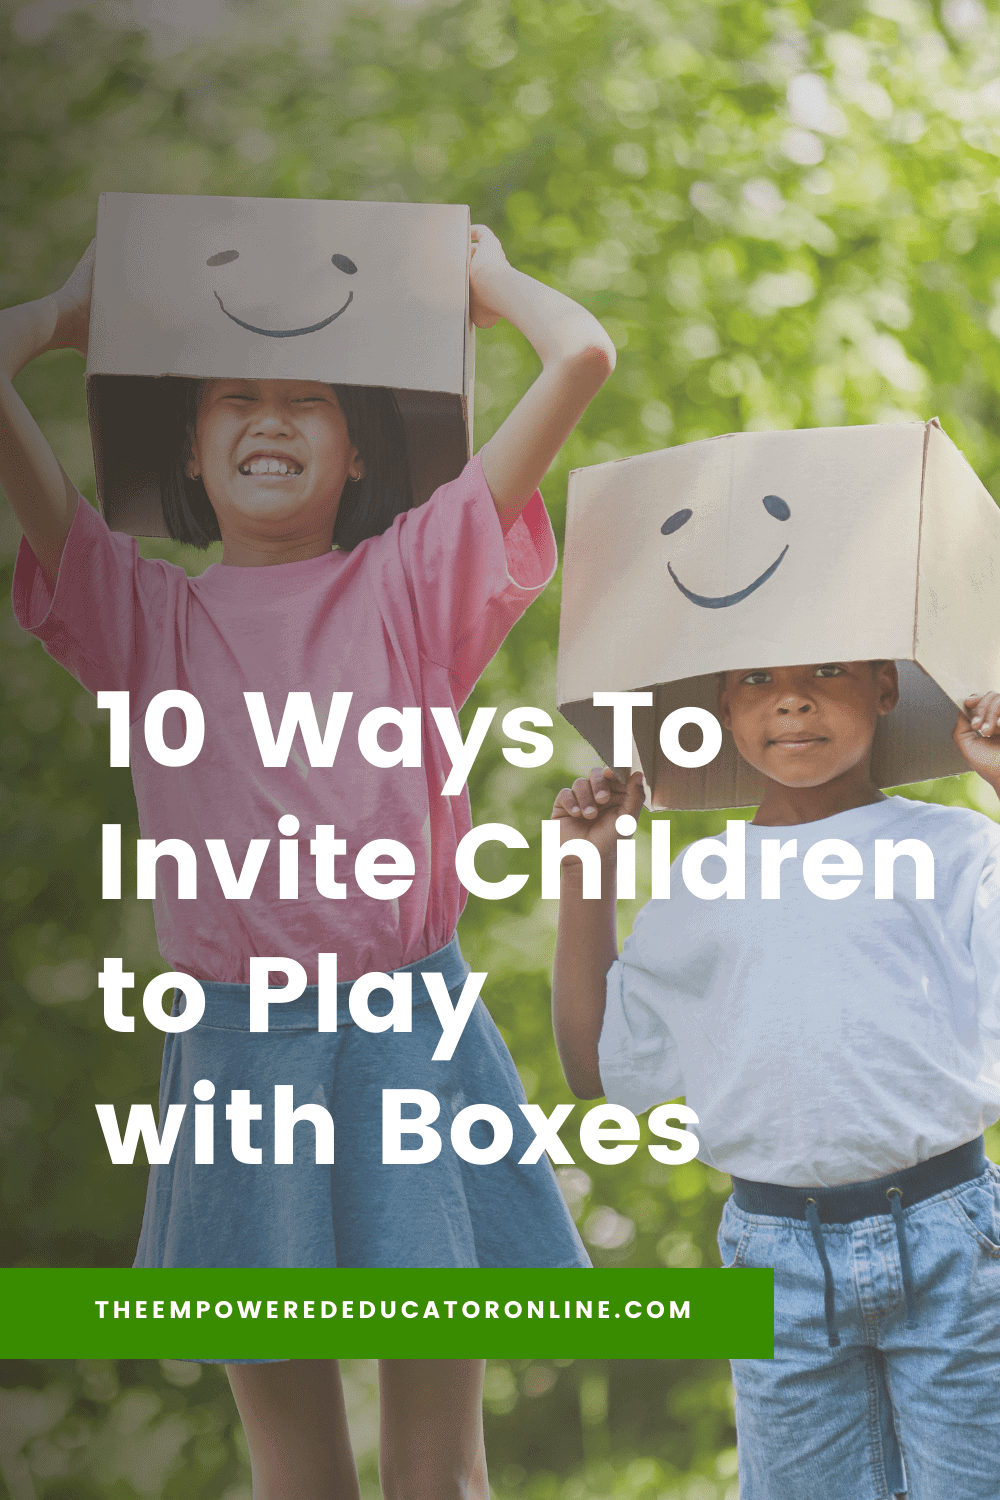 10 Ways To Invite Children to Play with Boxes pin (1)